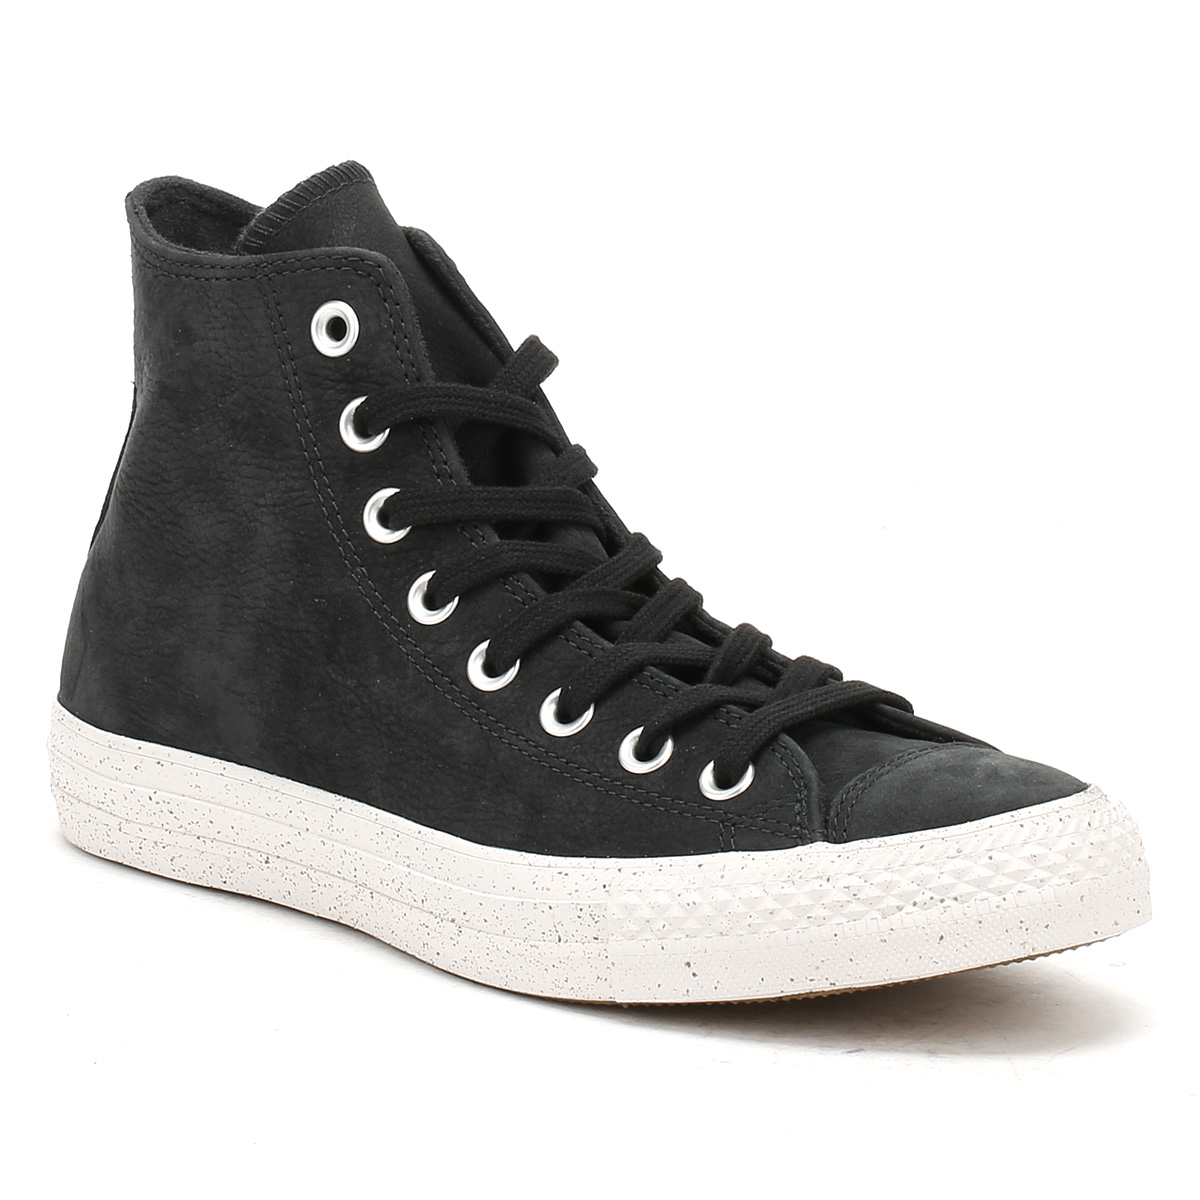 Converse Mens Trainers Chuck Taylor All Star Black Nubuck Hi Tops Sneakers Shoes